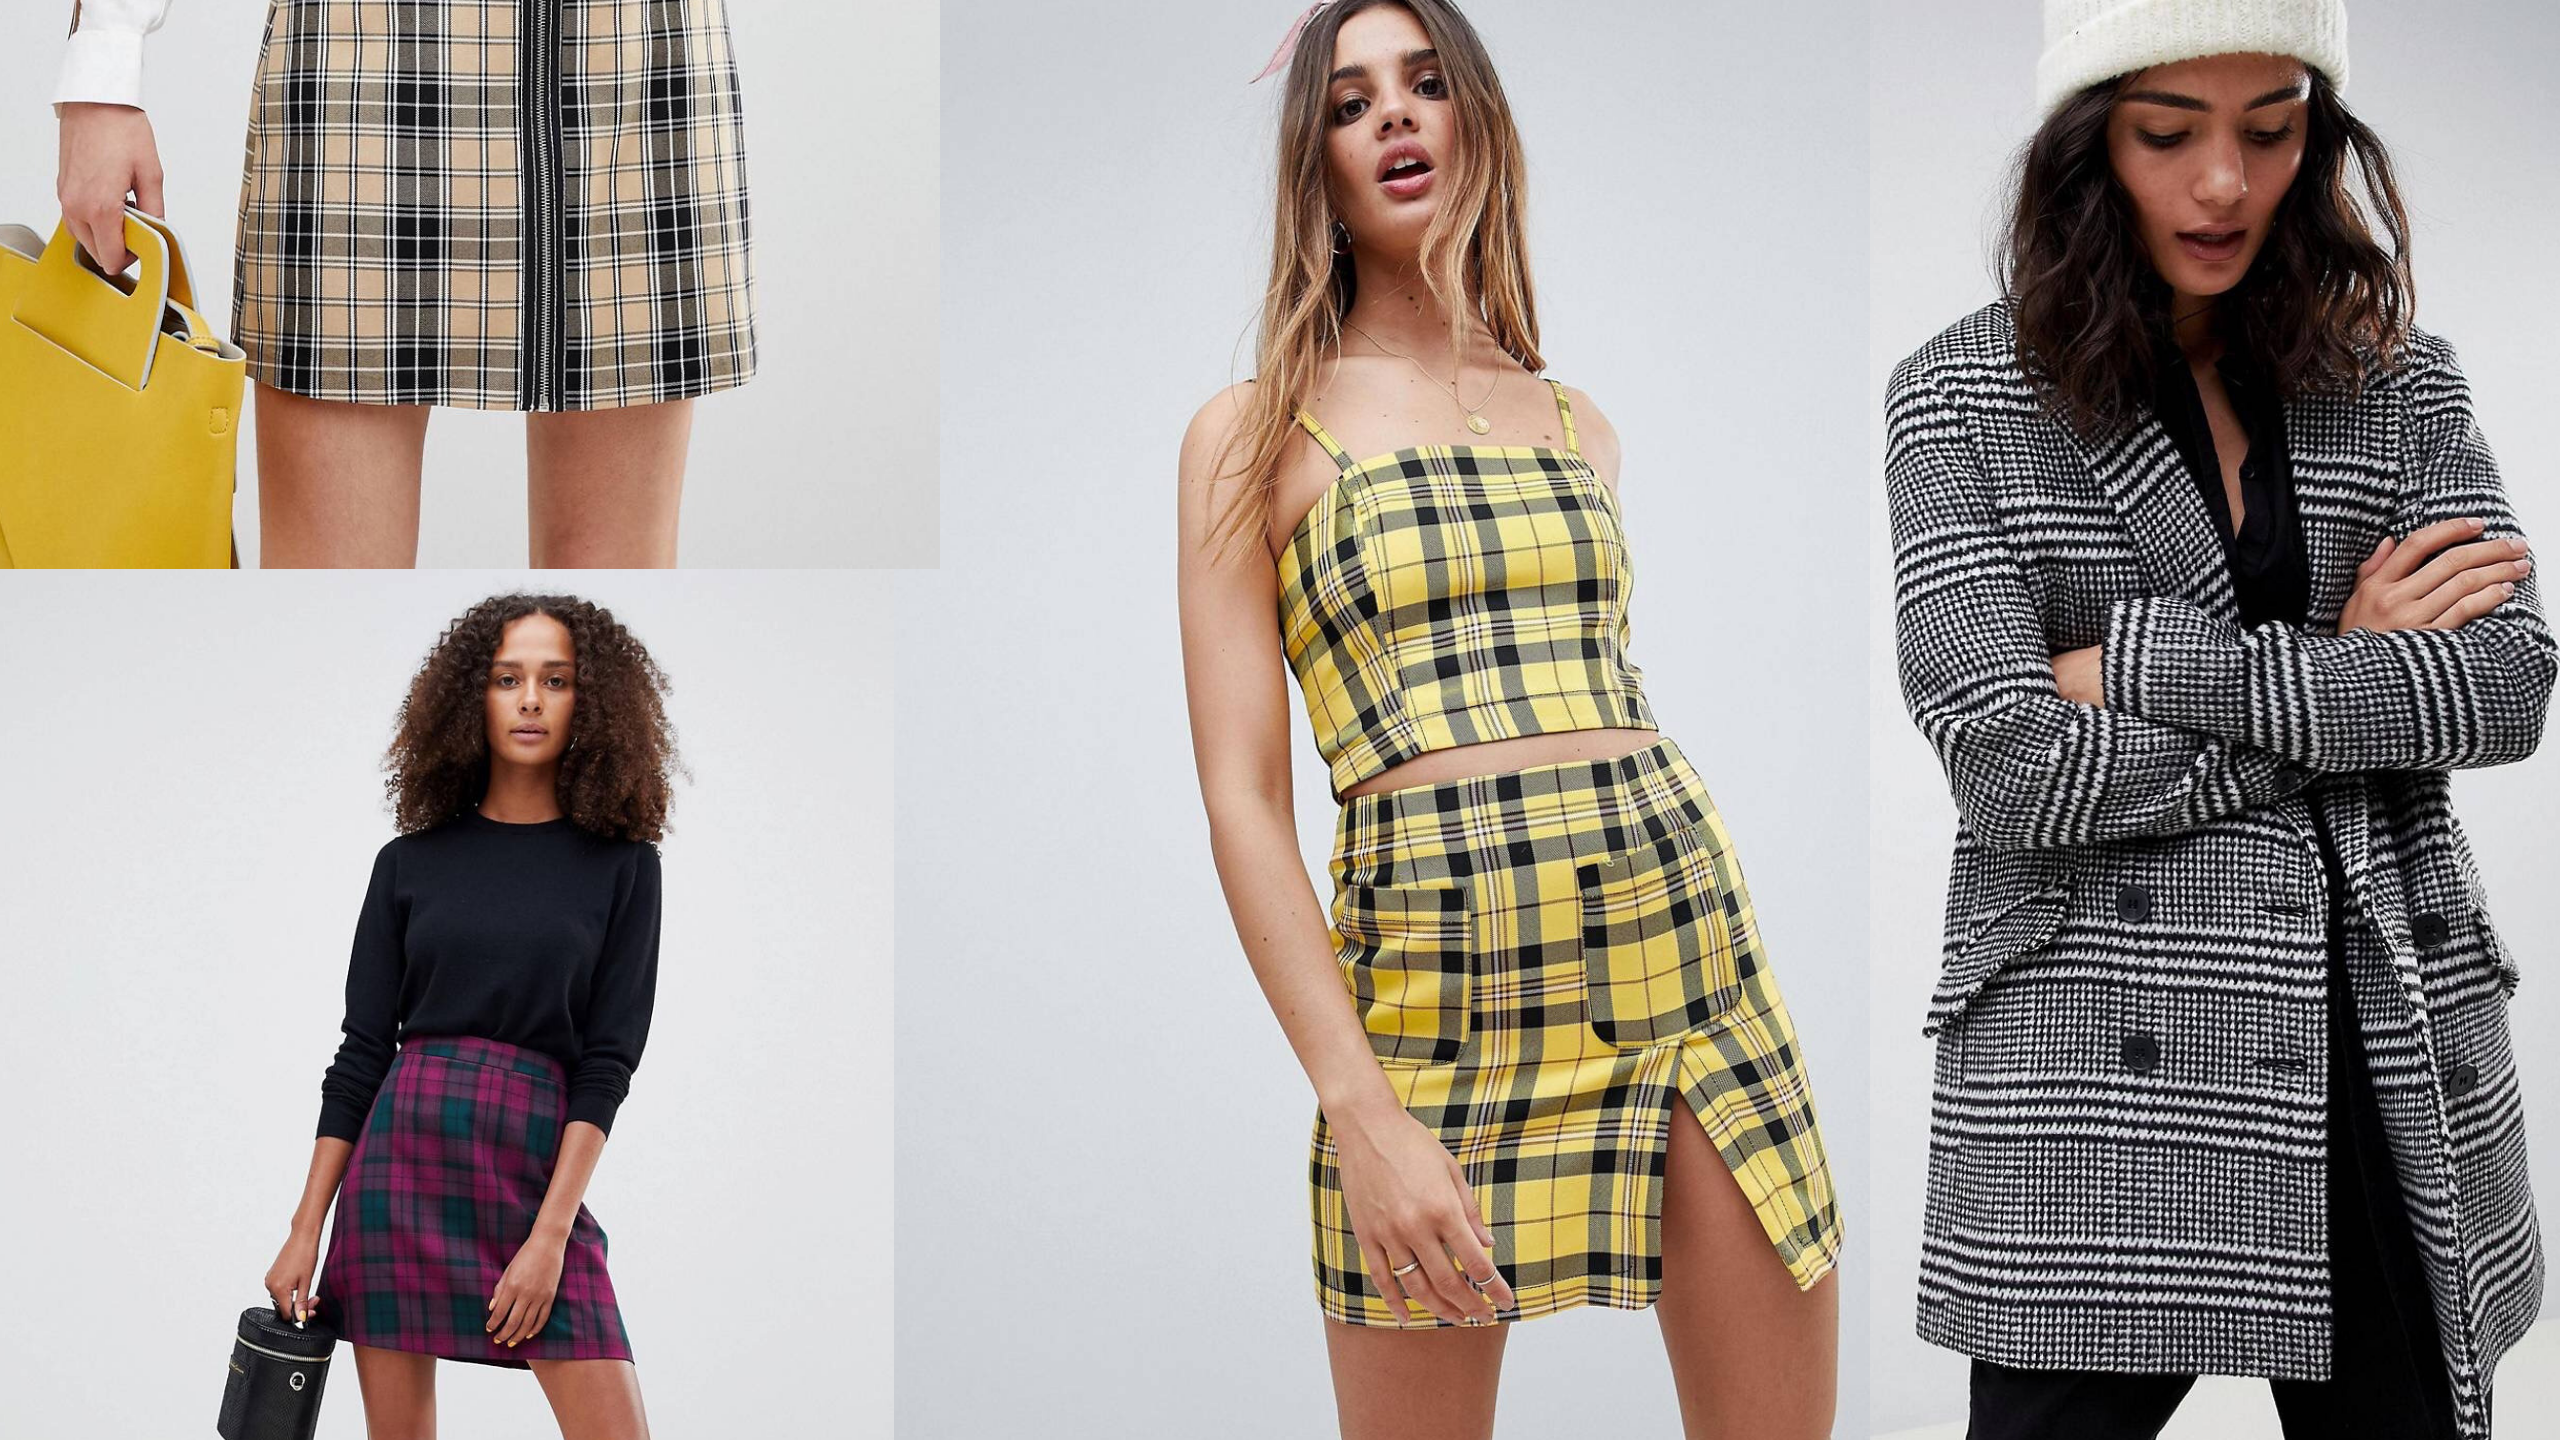 The Check Print Trend This Autumn